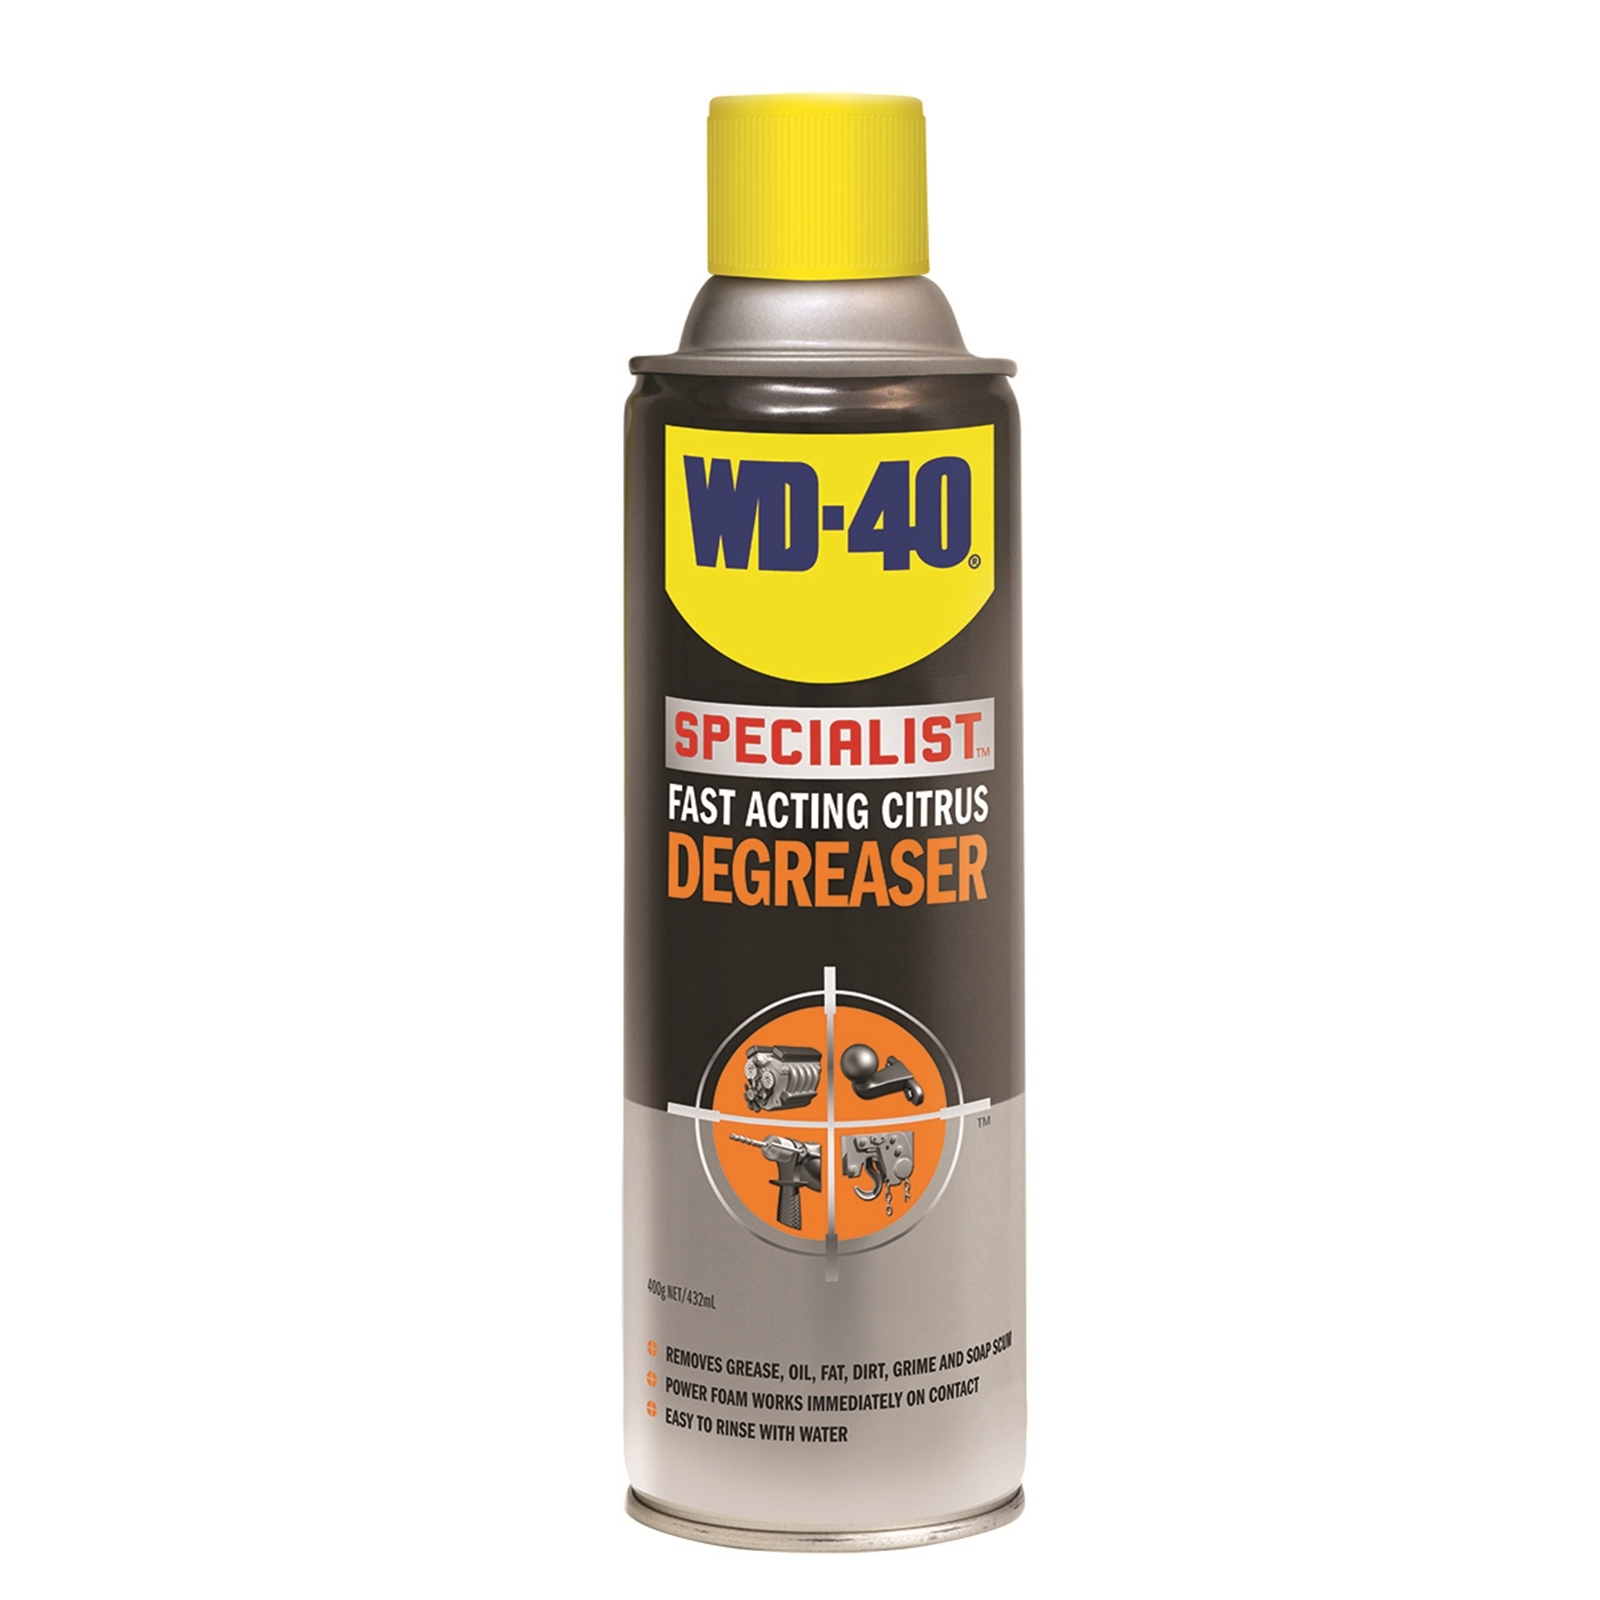 WD-40 Specialist® Fast Acting Citrus Degreaser 400g Clear